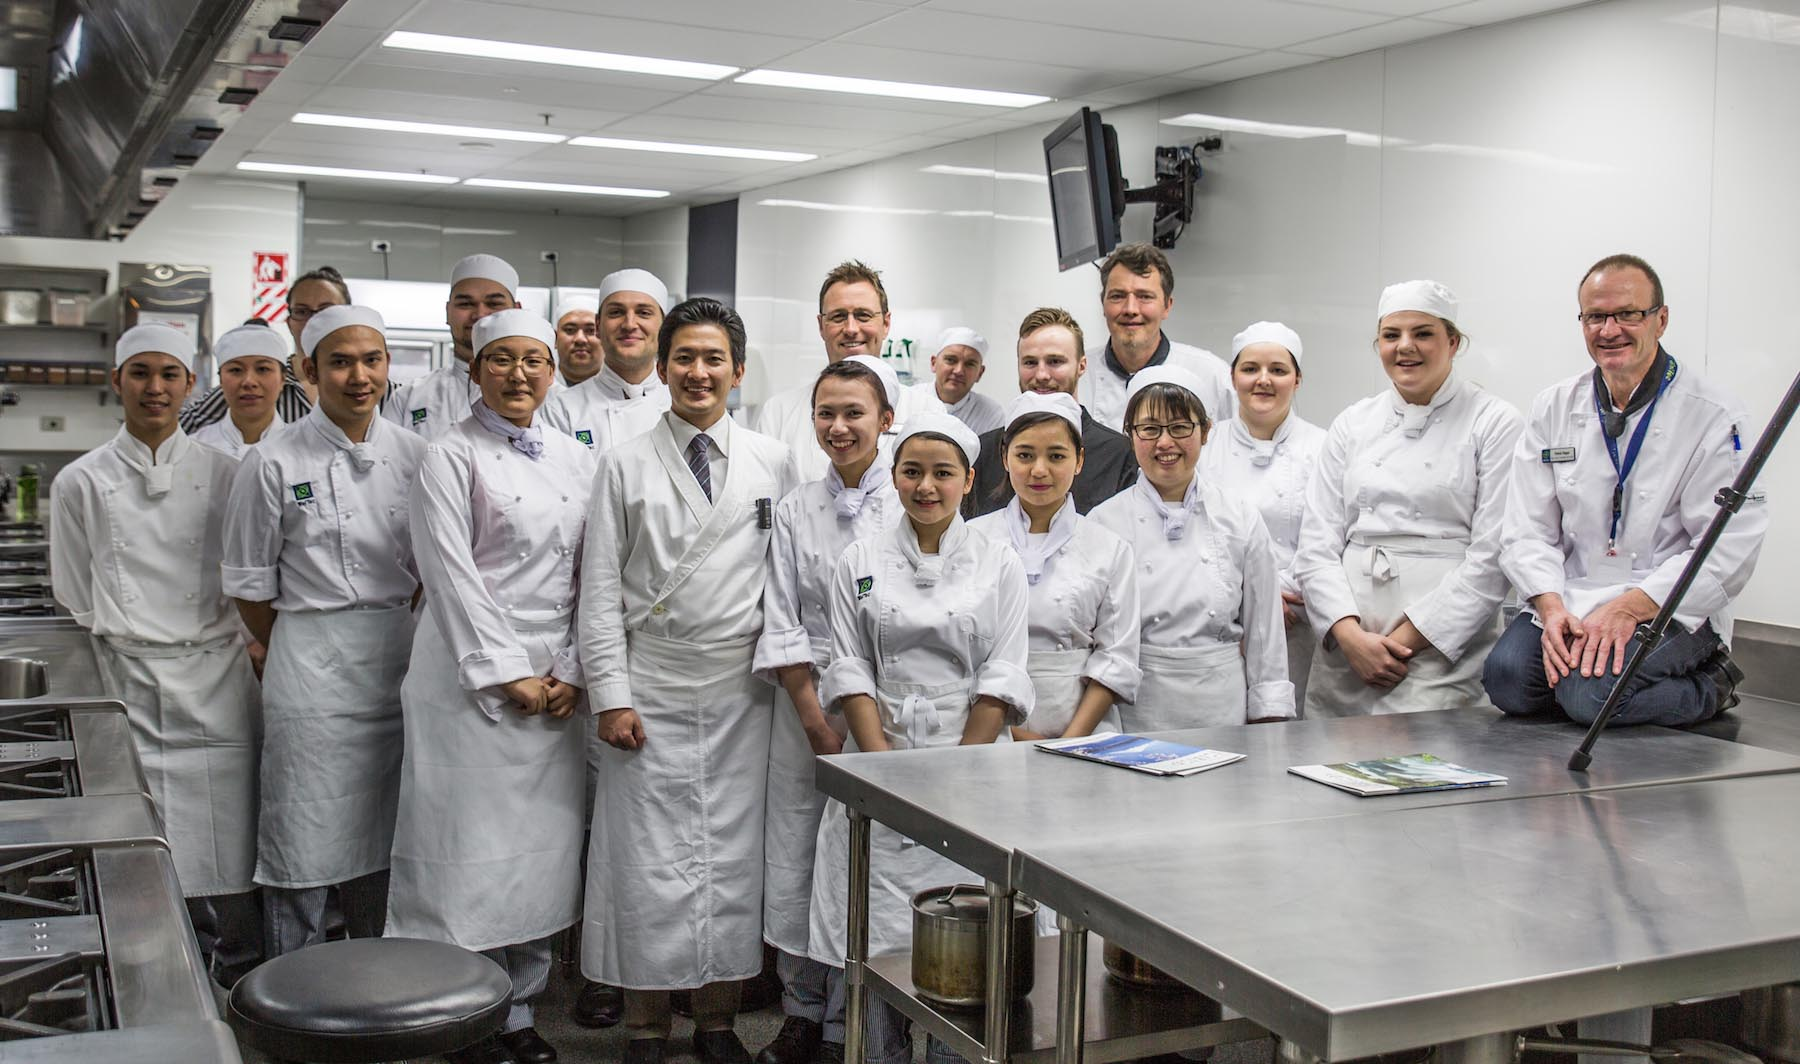 Chef Shares Talent With Students